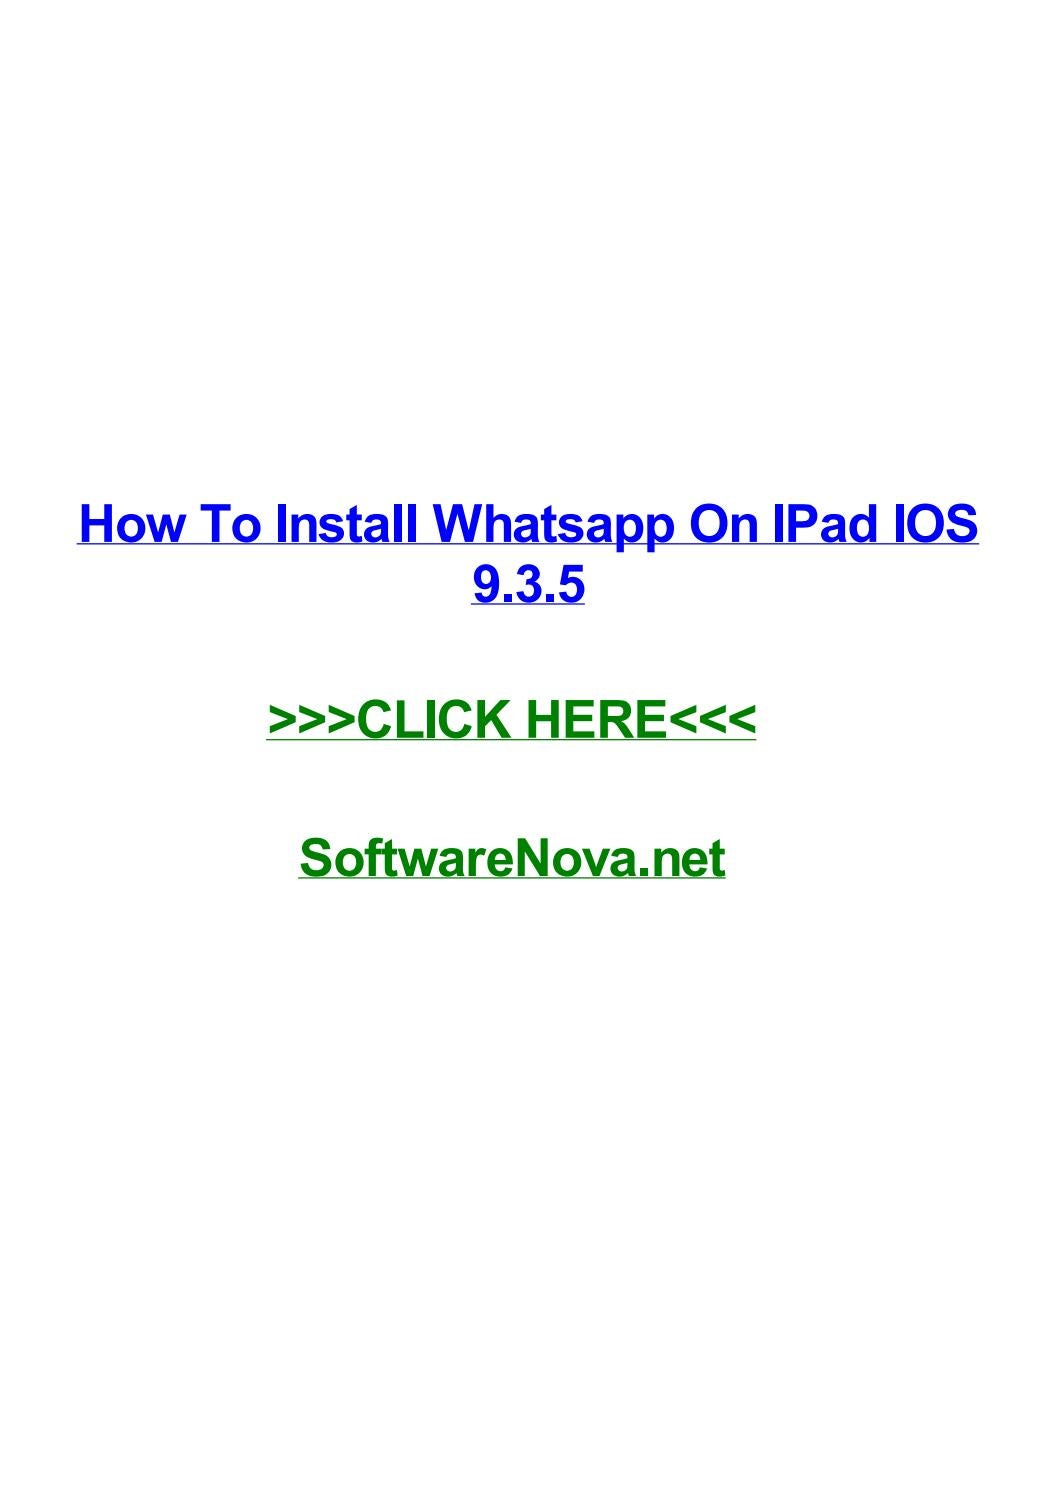 how to install whatsapp on iphone 4s for free